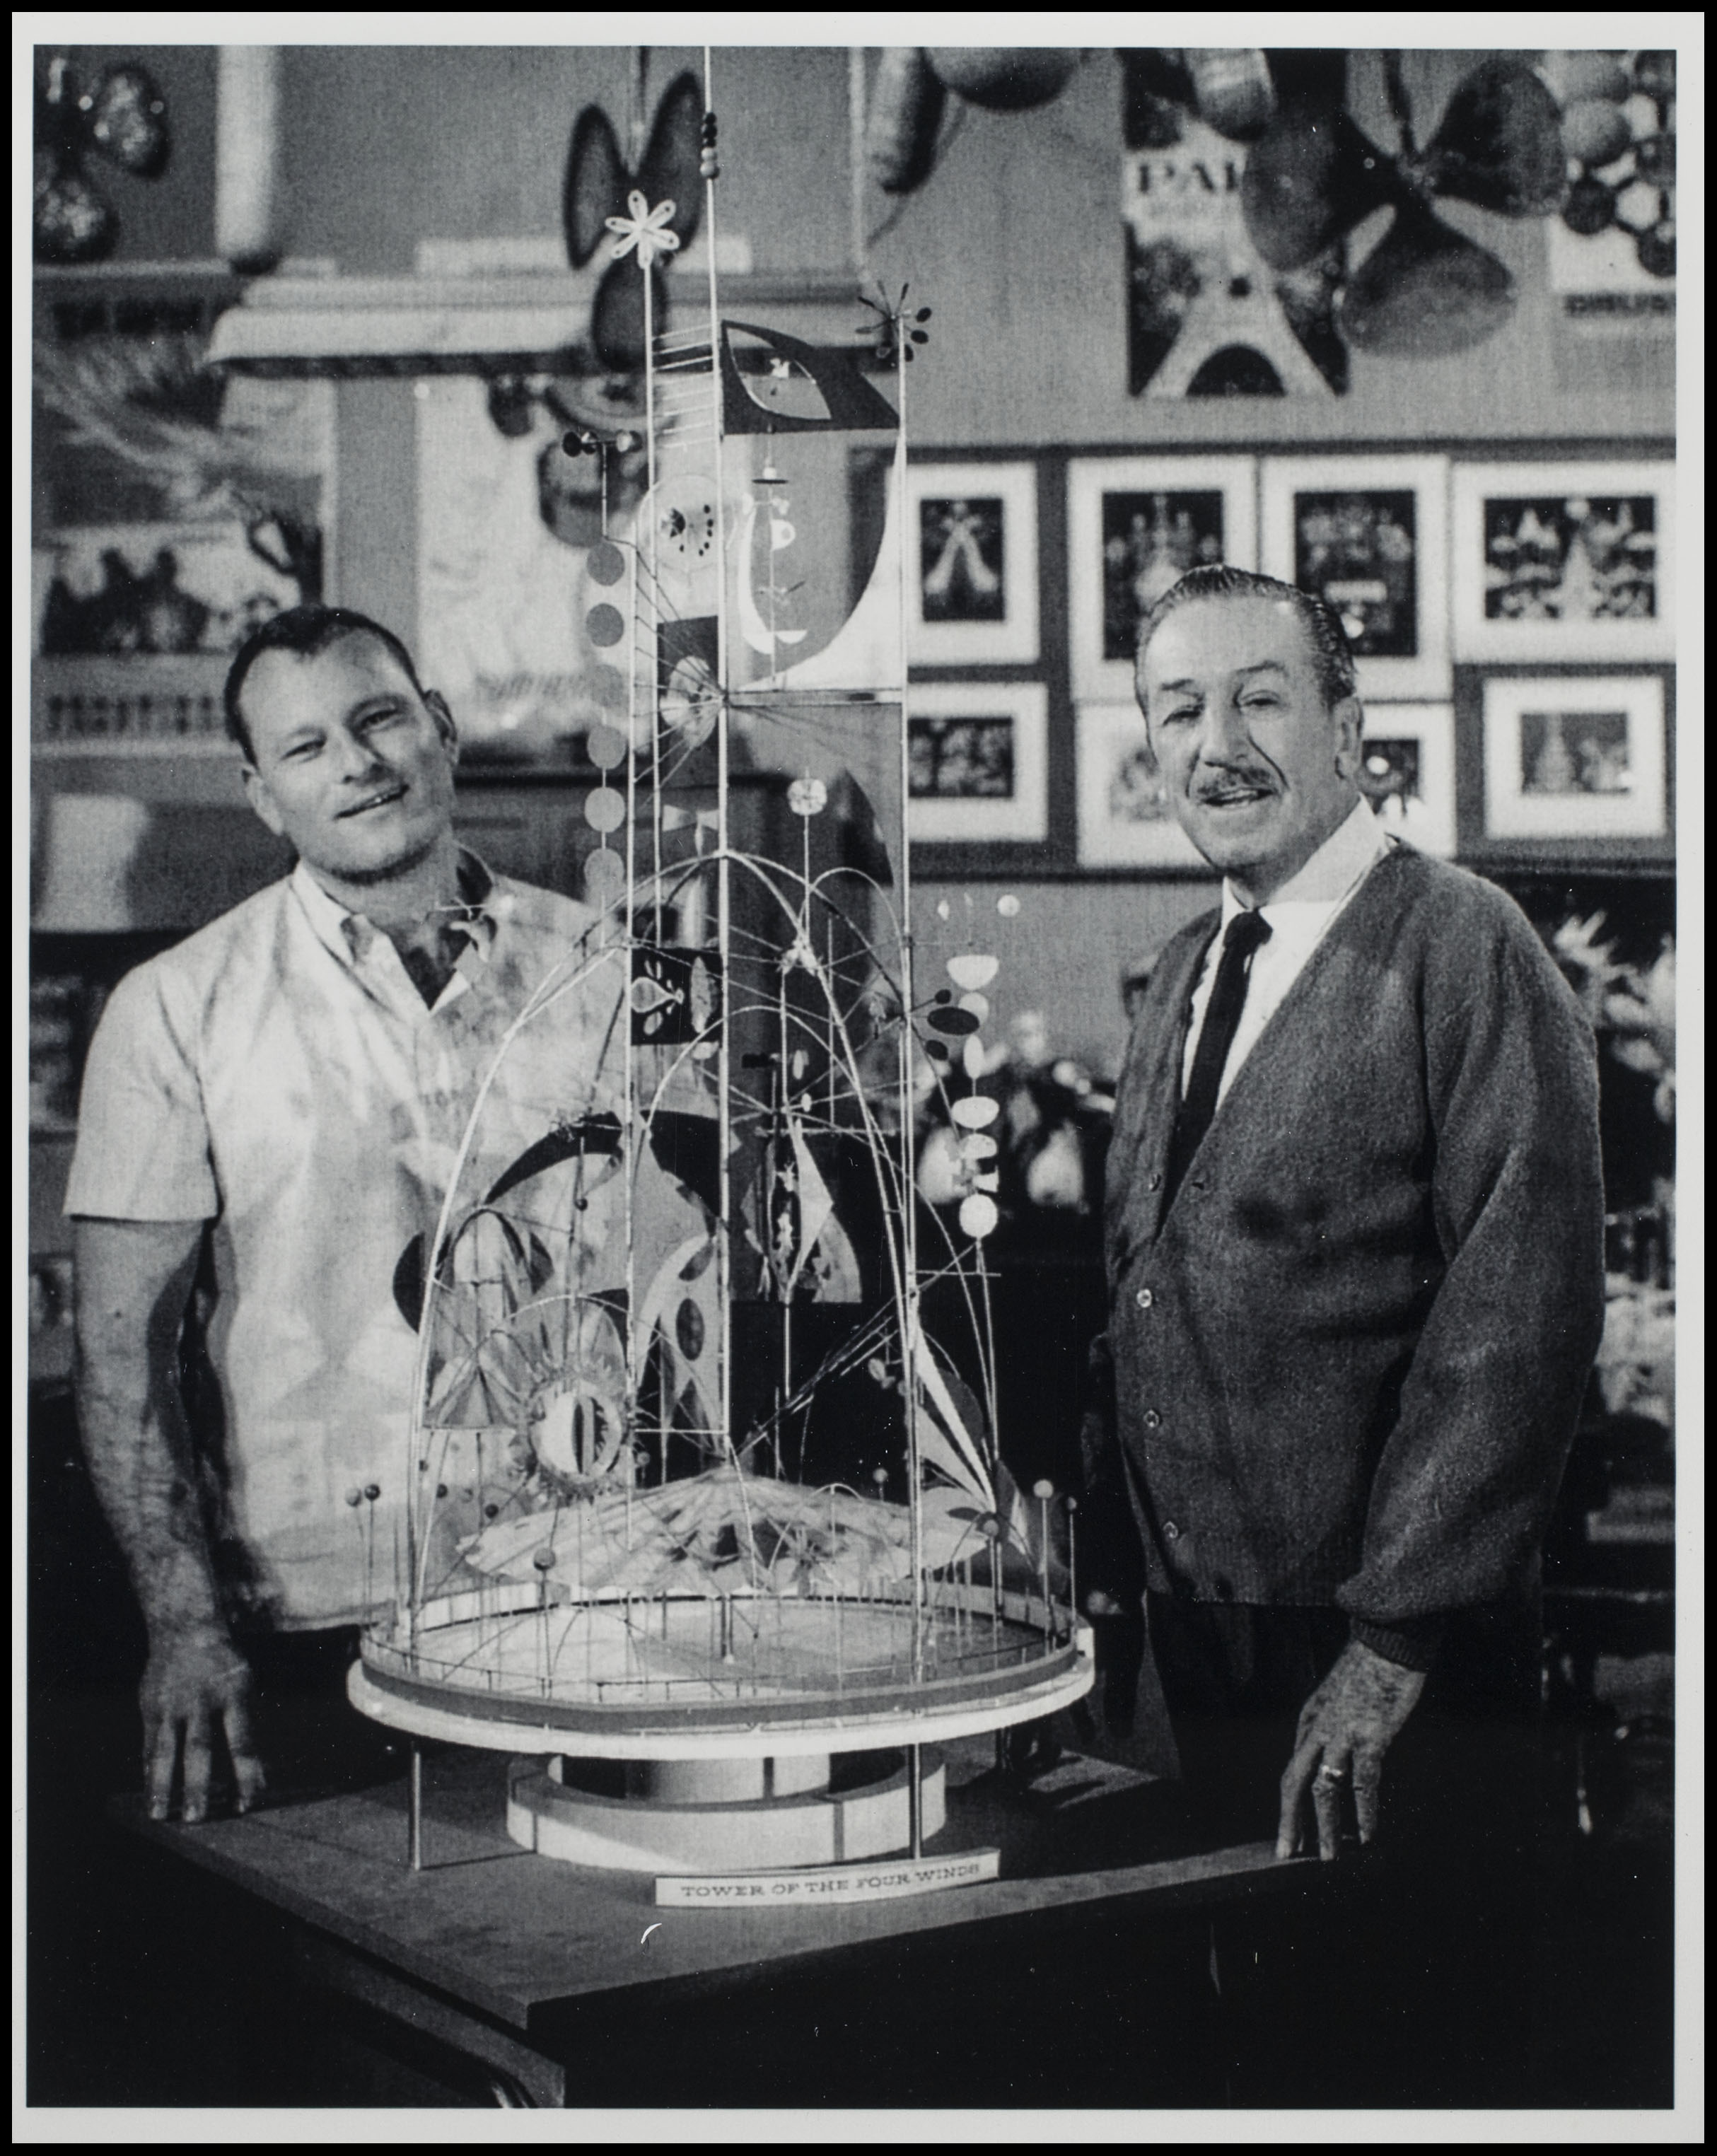 Walt and the world's fair: dreaming up a Disney delight